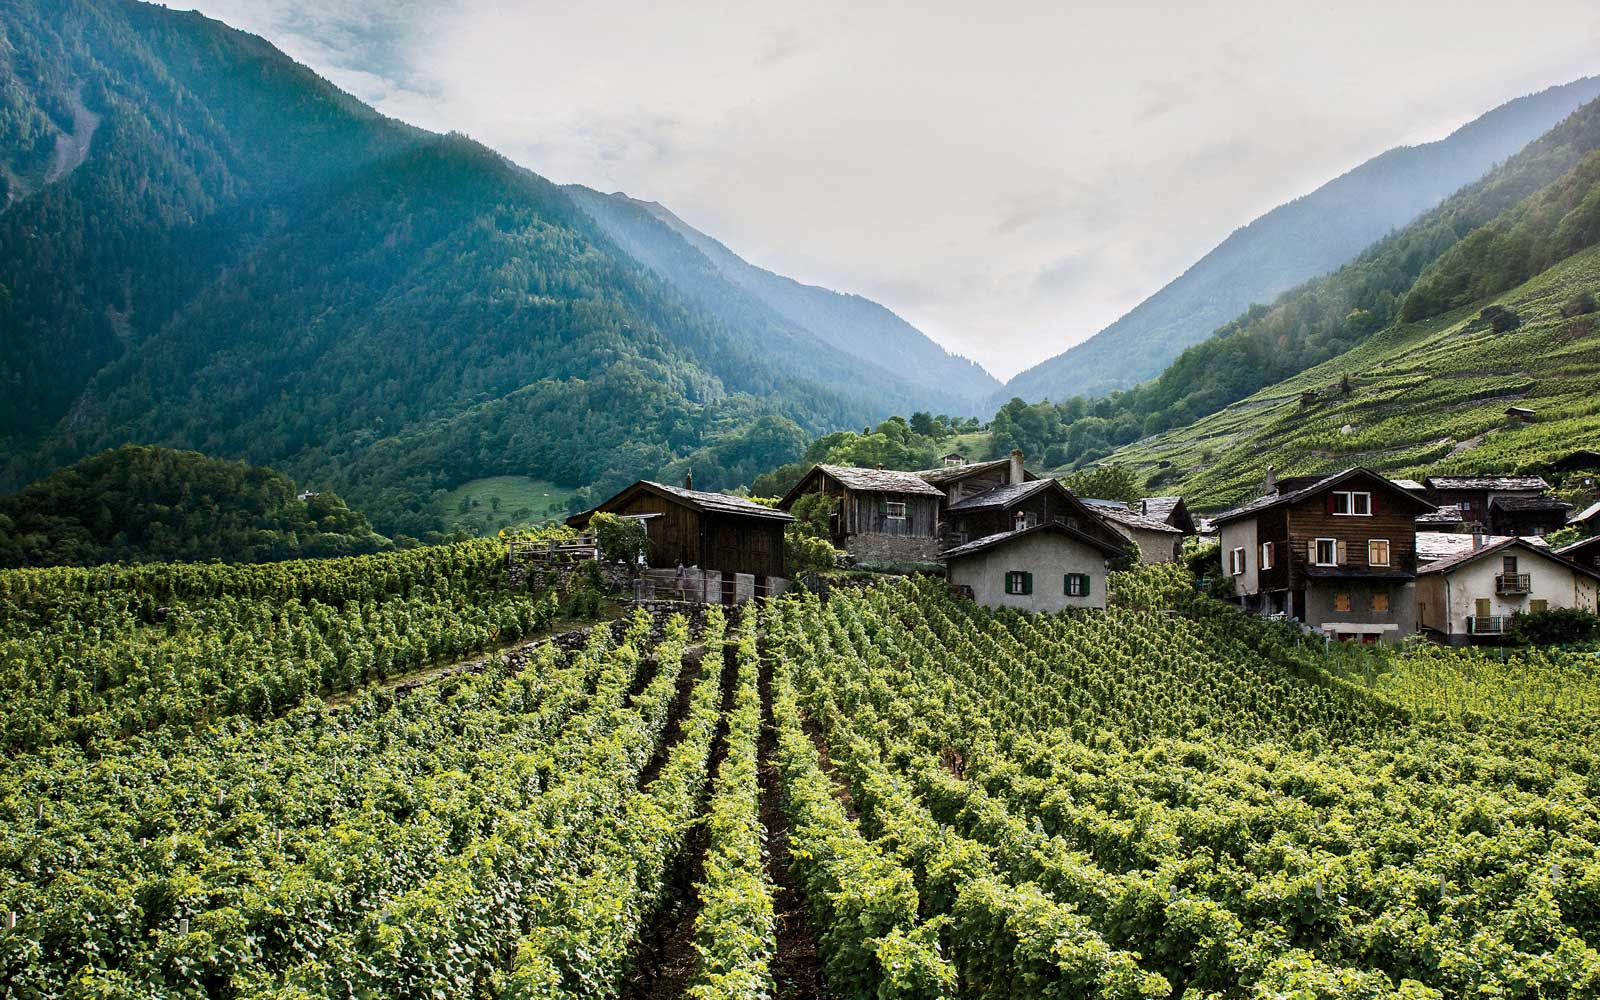 Vineyards in Le Perrey, Switzerland